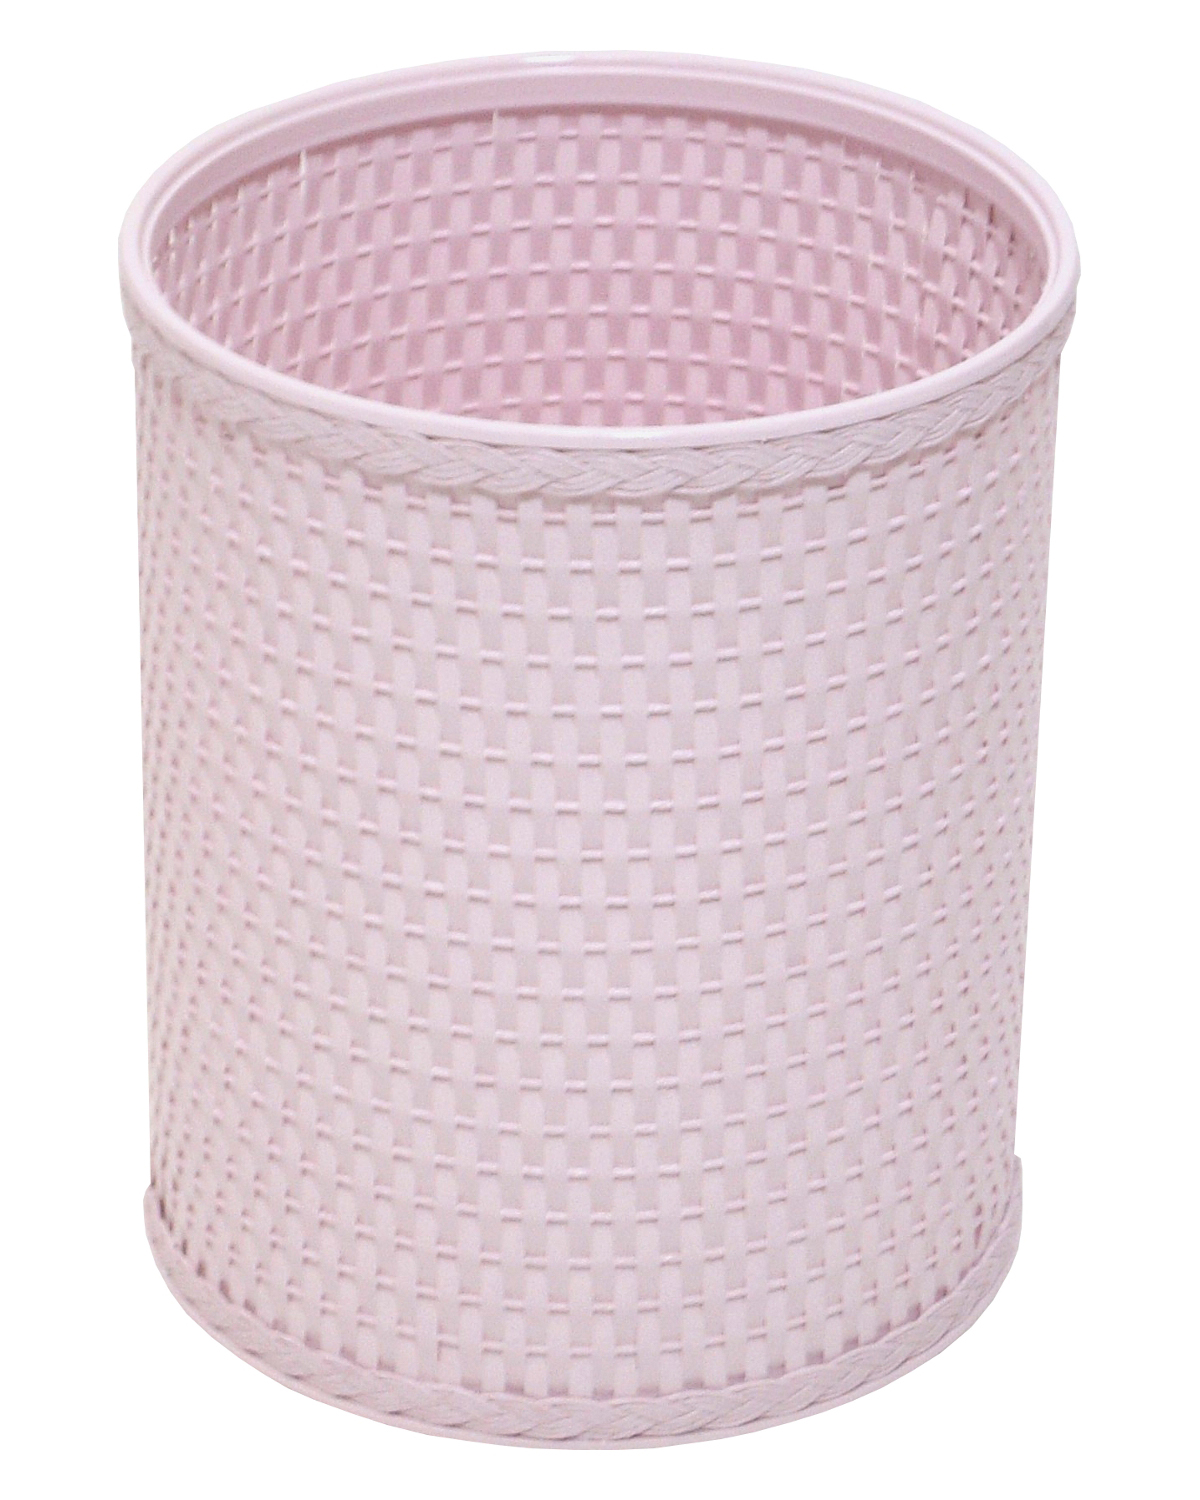 Redmon Chelsea Collection Decorator Color Round Wicker Wastebasket - Crystal Pink